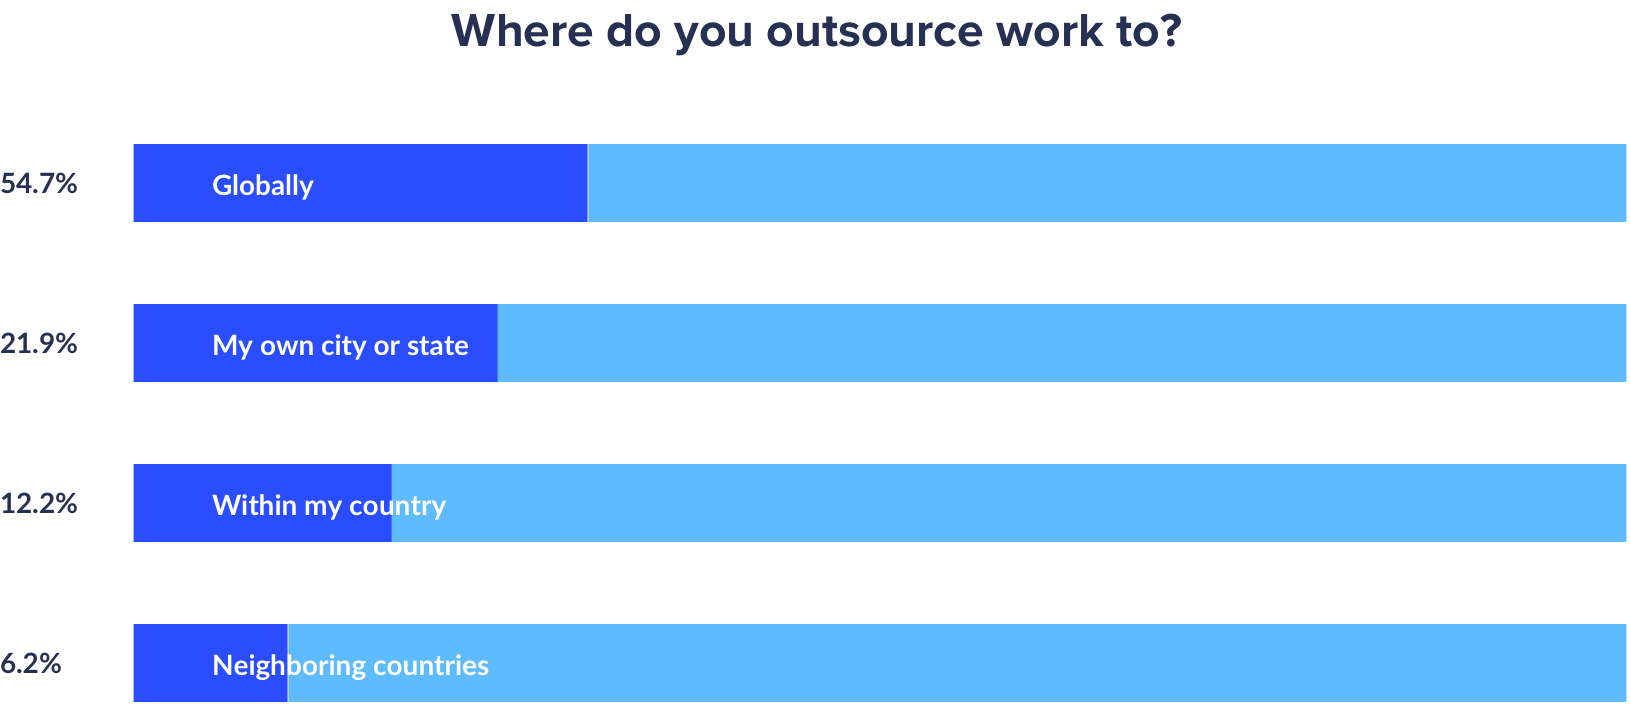 where do agencies outsource wotk to